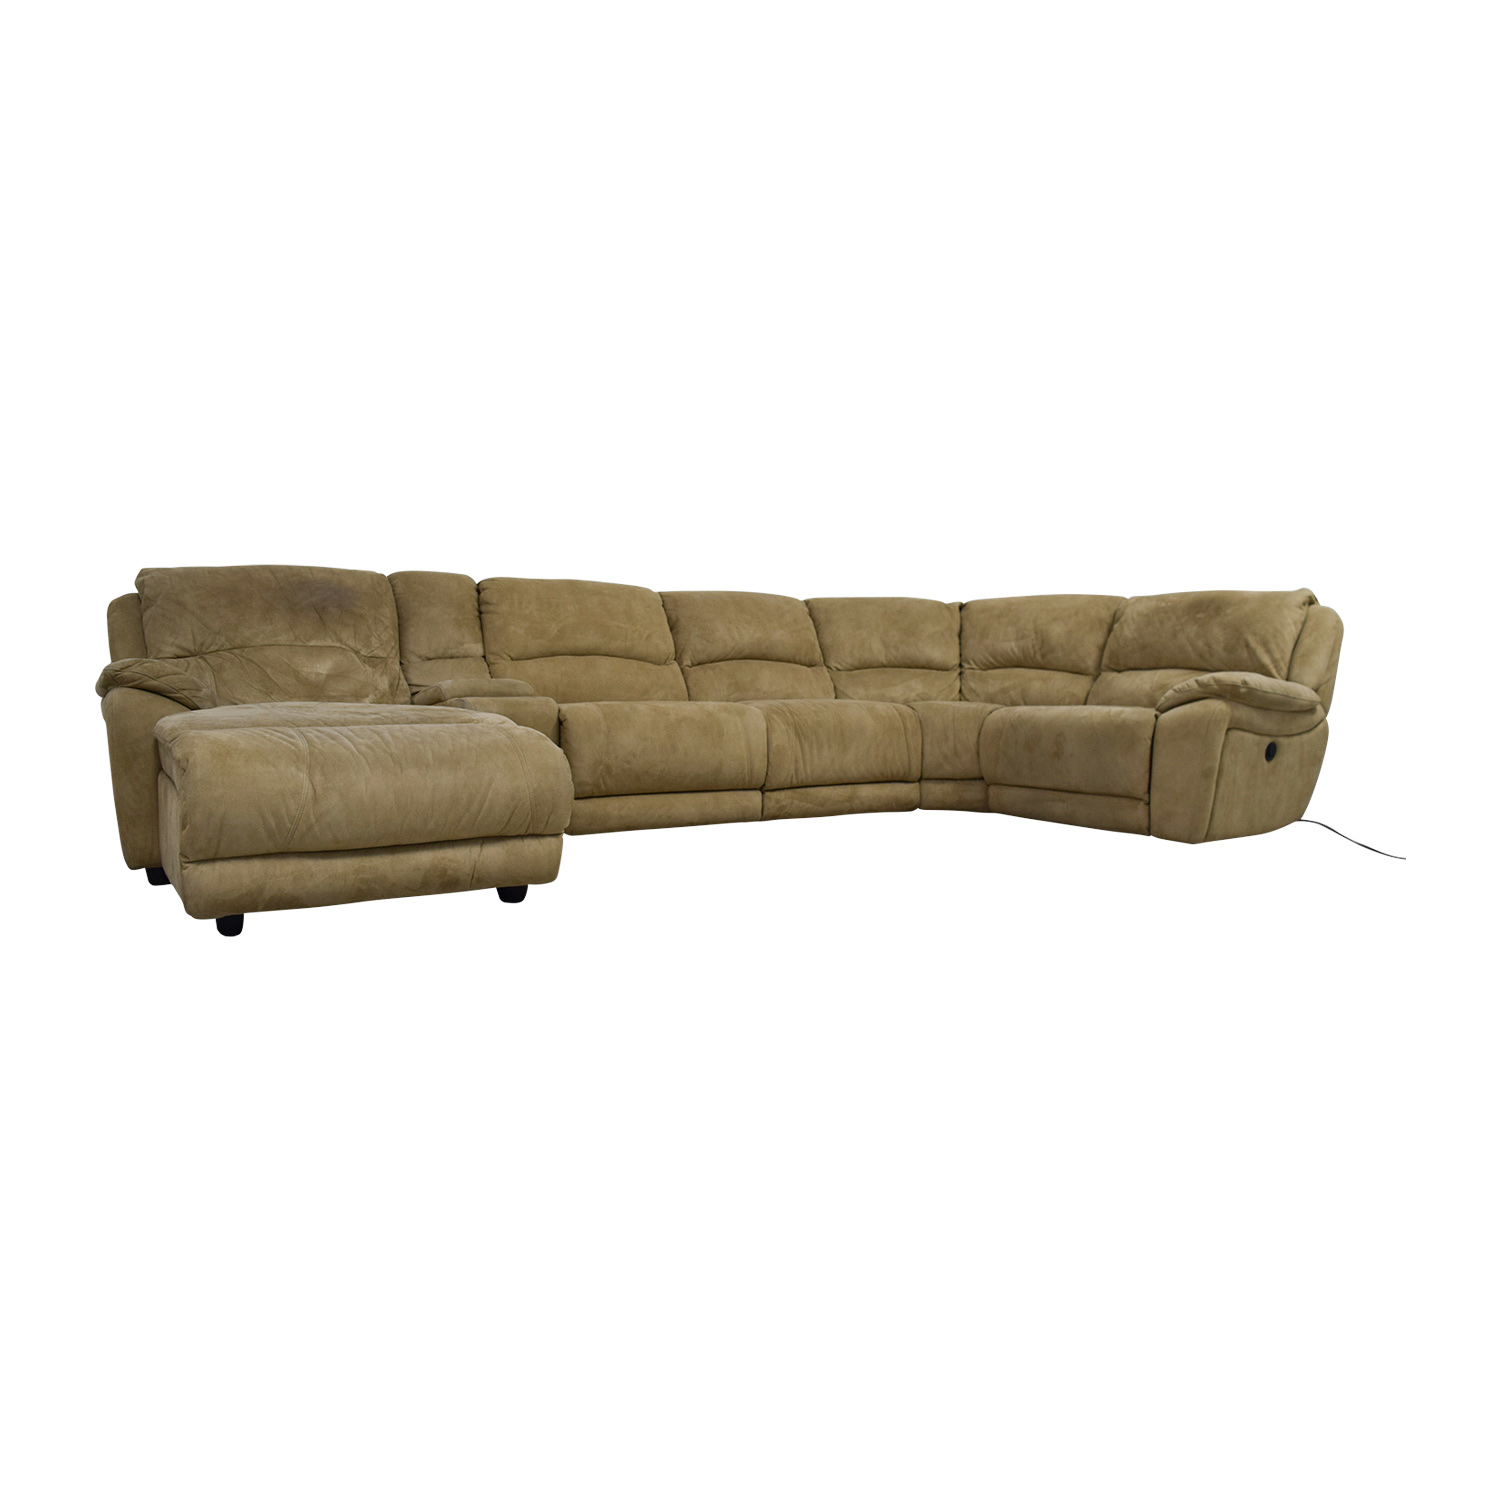 Raymour & Flanigan Raymour & Flanigan Cindy Crawford Mackenzie Microfiber Power Reclining Sectional used